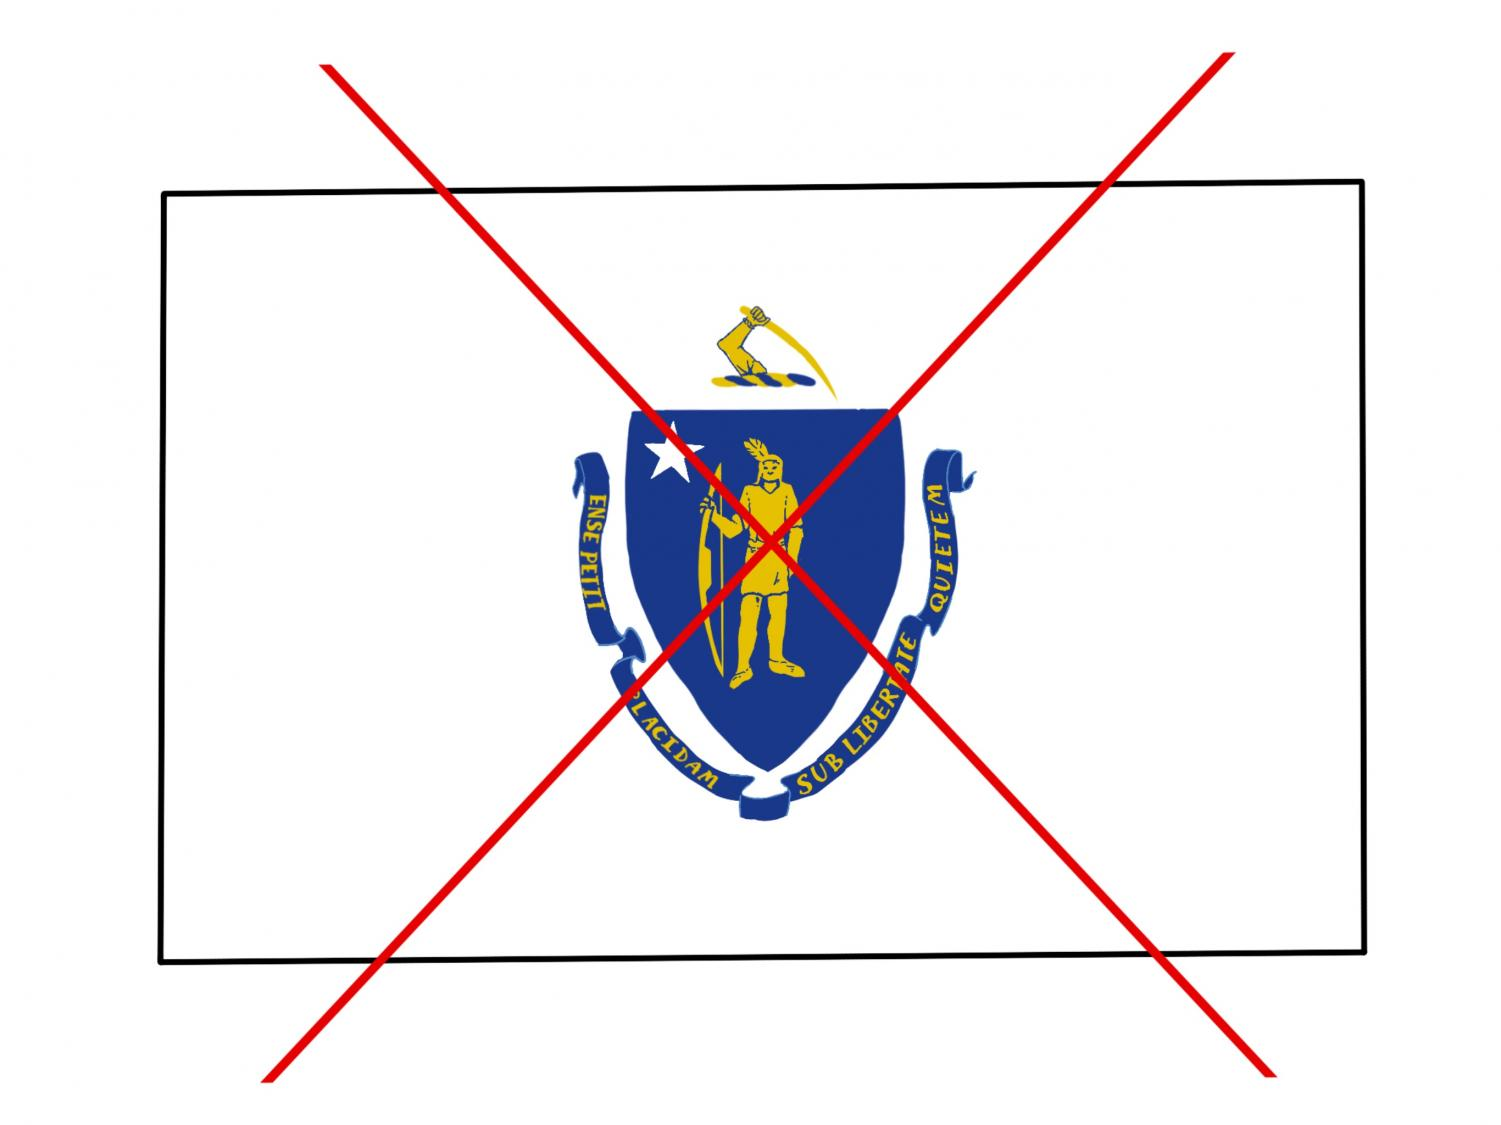 Graphics Coordinator Sharada Vishwanath argues that the Massachusetts state flag must be changed because it represents the terror settlers brought to the natives in the states colonial years.